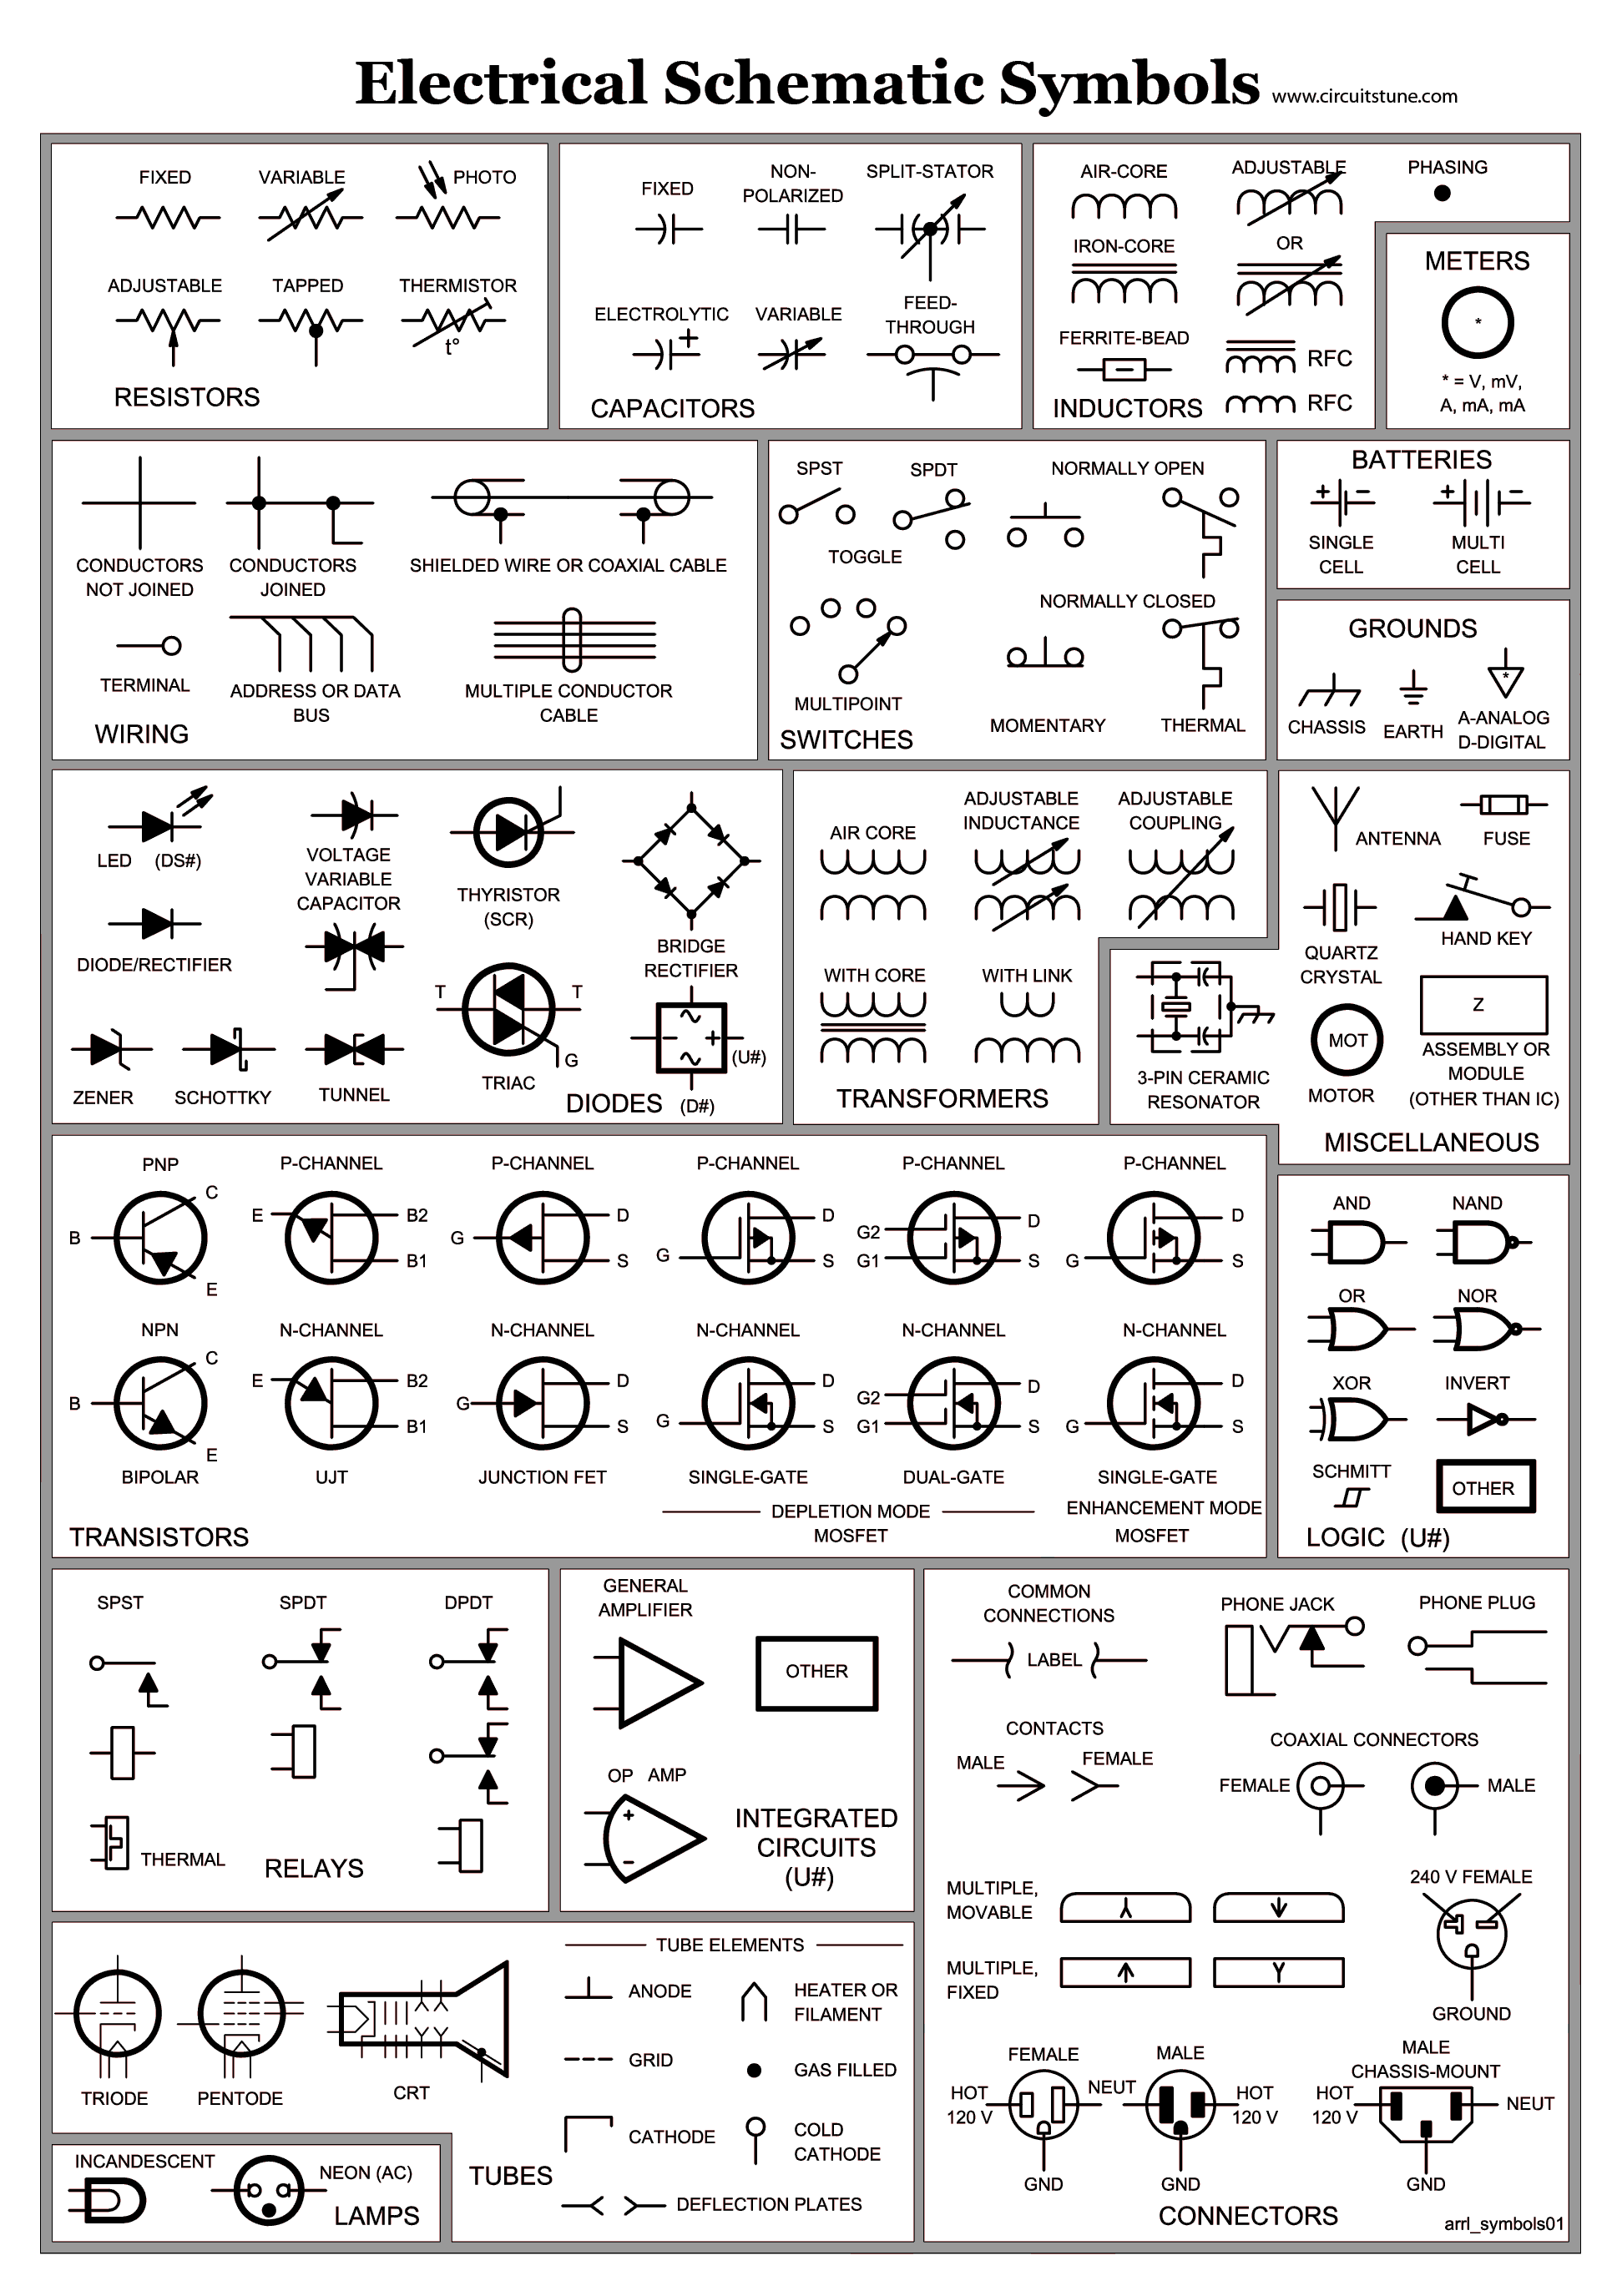 a65d176364692d2ebe913b58a654cfc3 electrical schematic symbols wire diagram symbols automotive standard wiring diagram symbols at bayanpartner.co